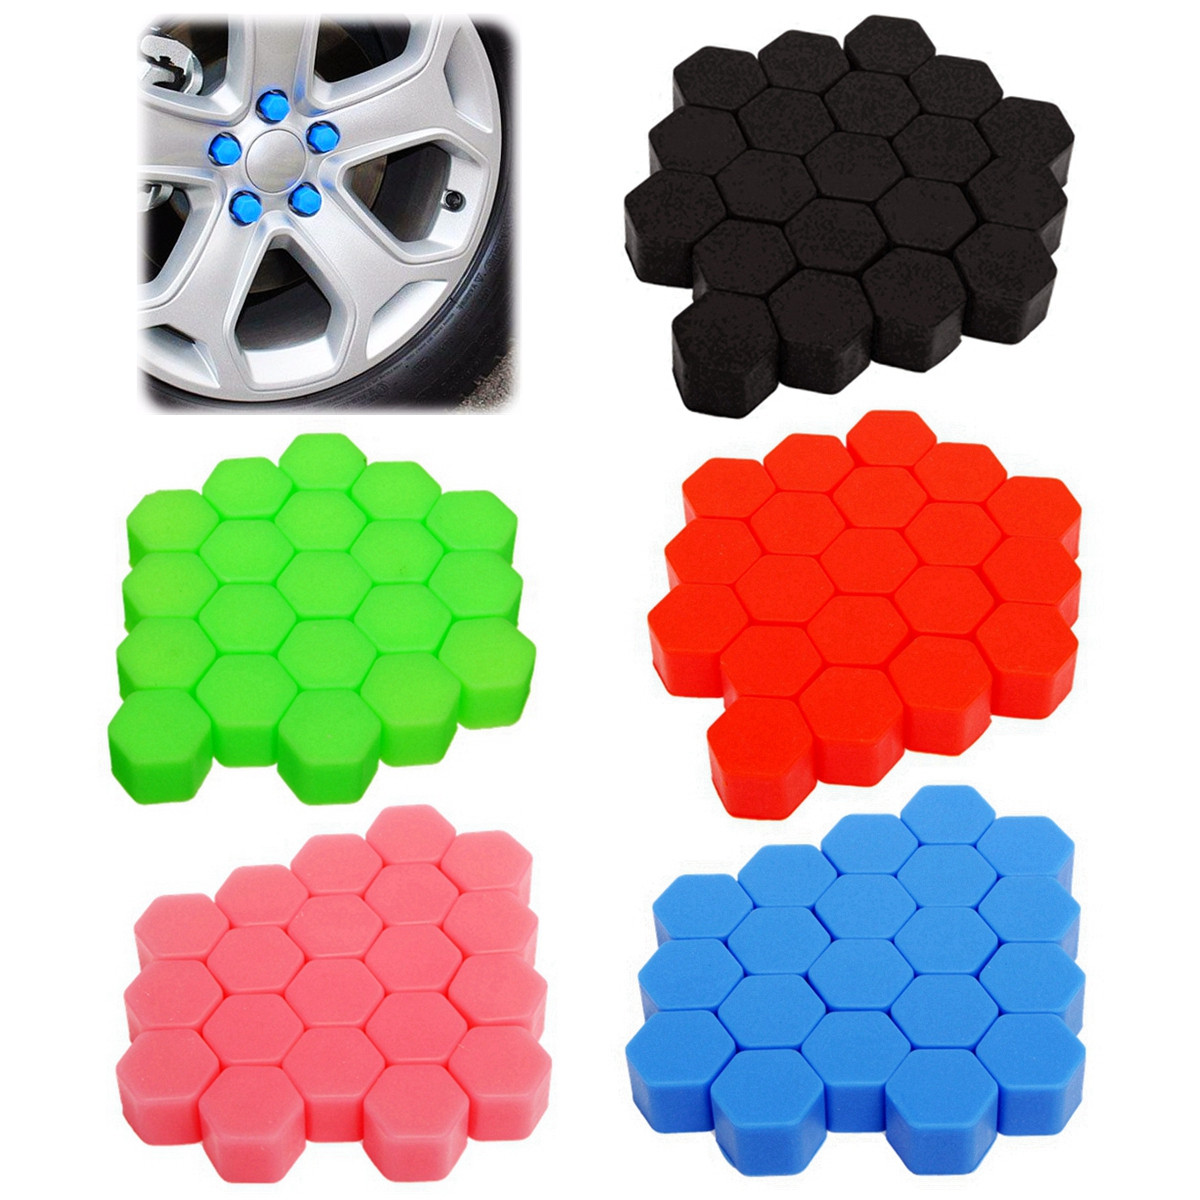 20PCS 19mm Auto Car Silicone Wheel Nuts Hub Covers Screw Dust Protective Caps